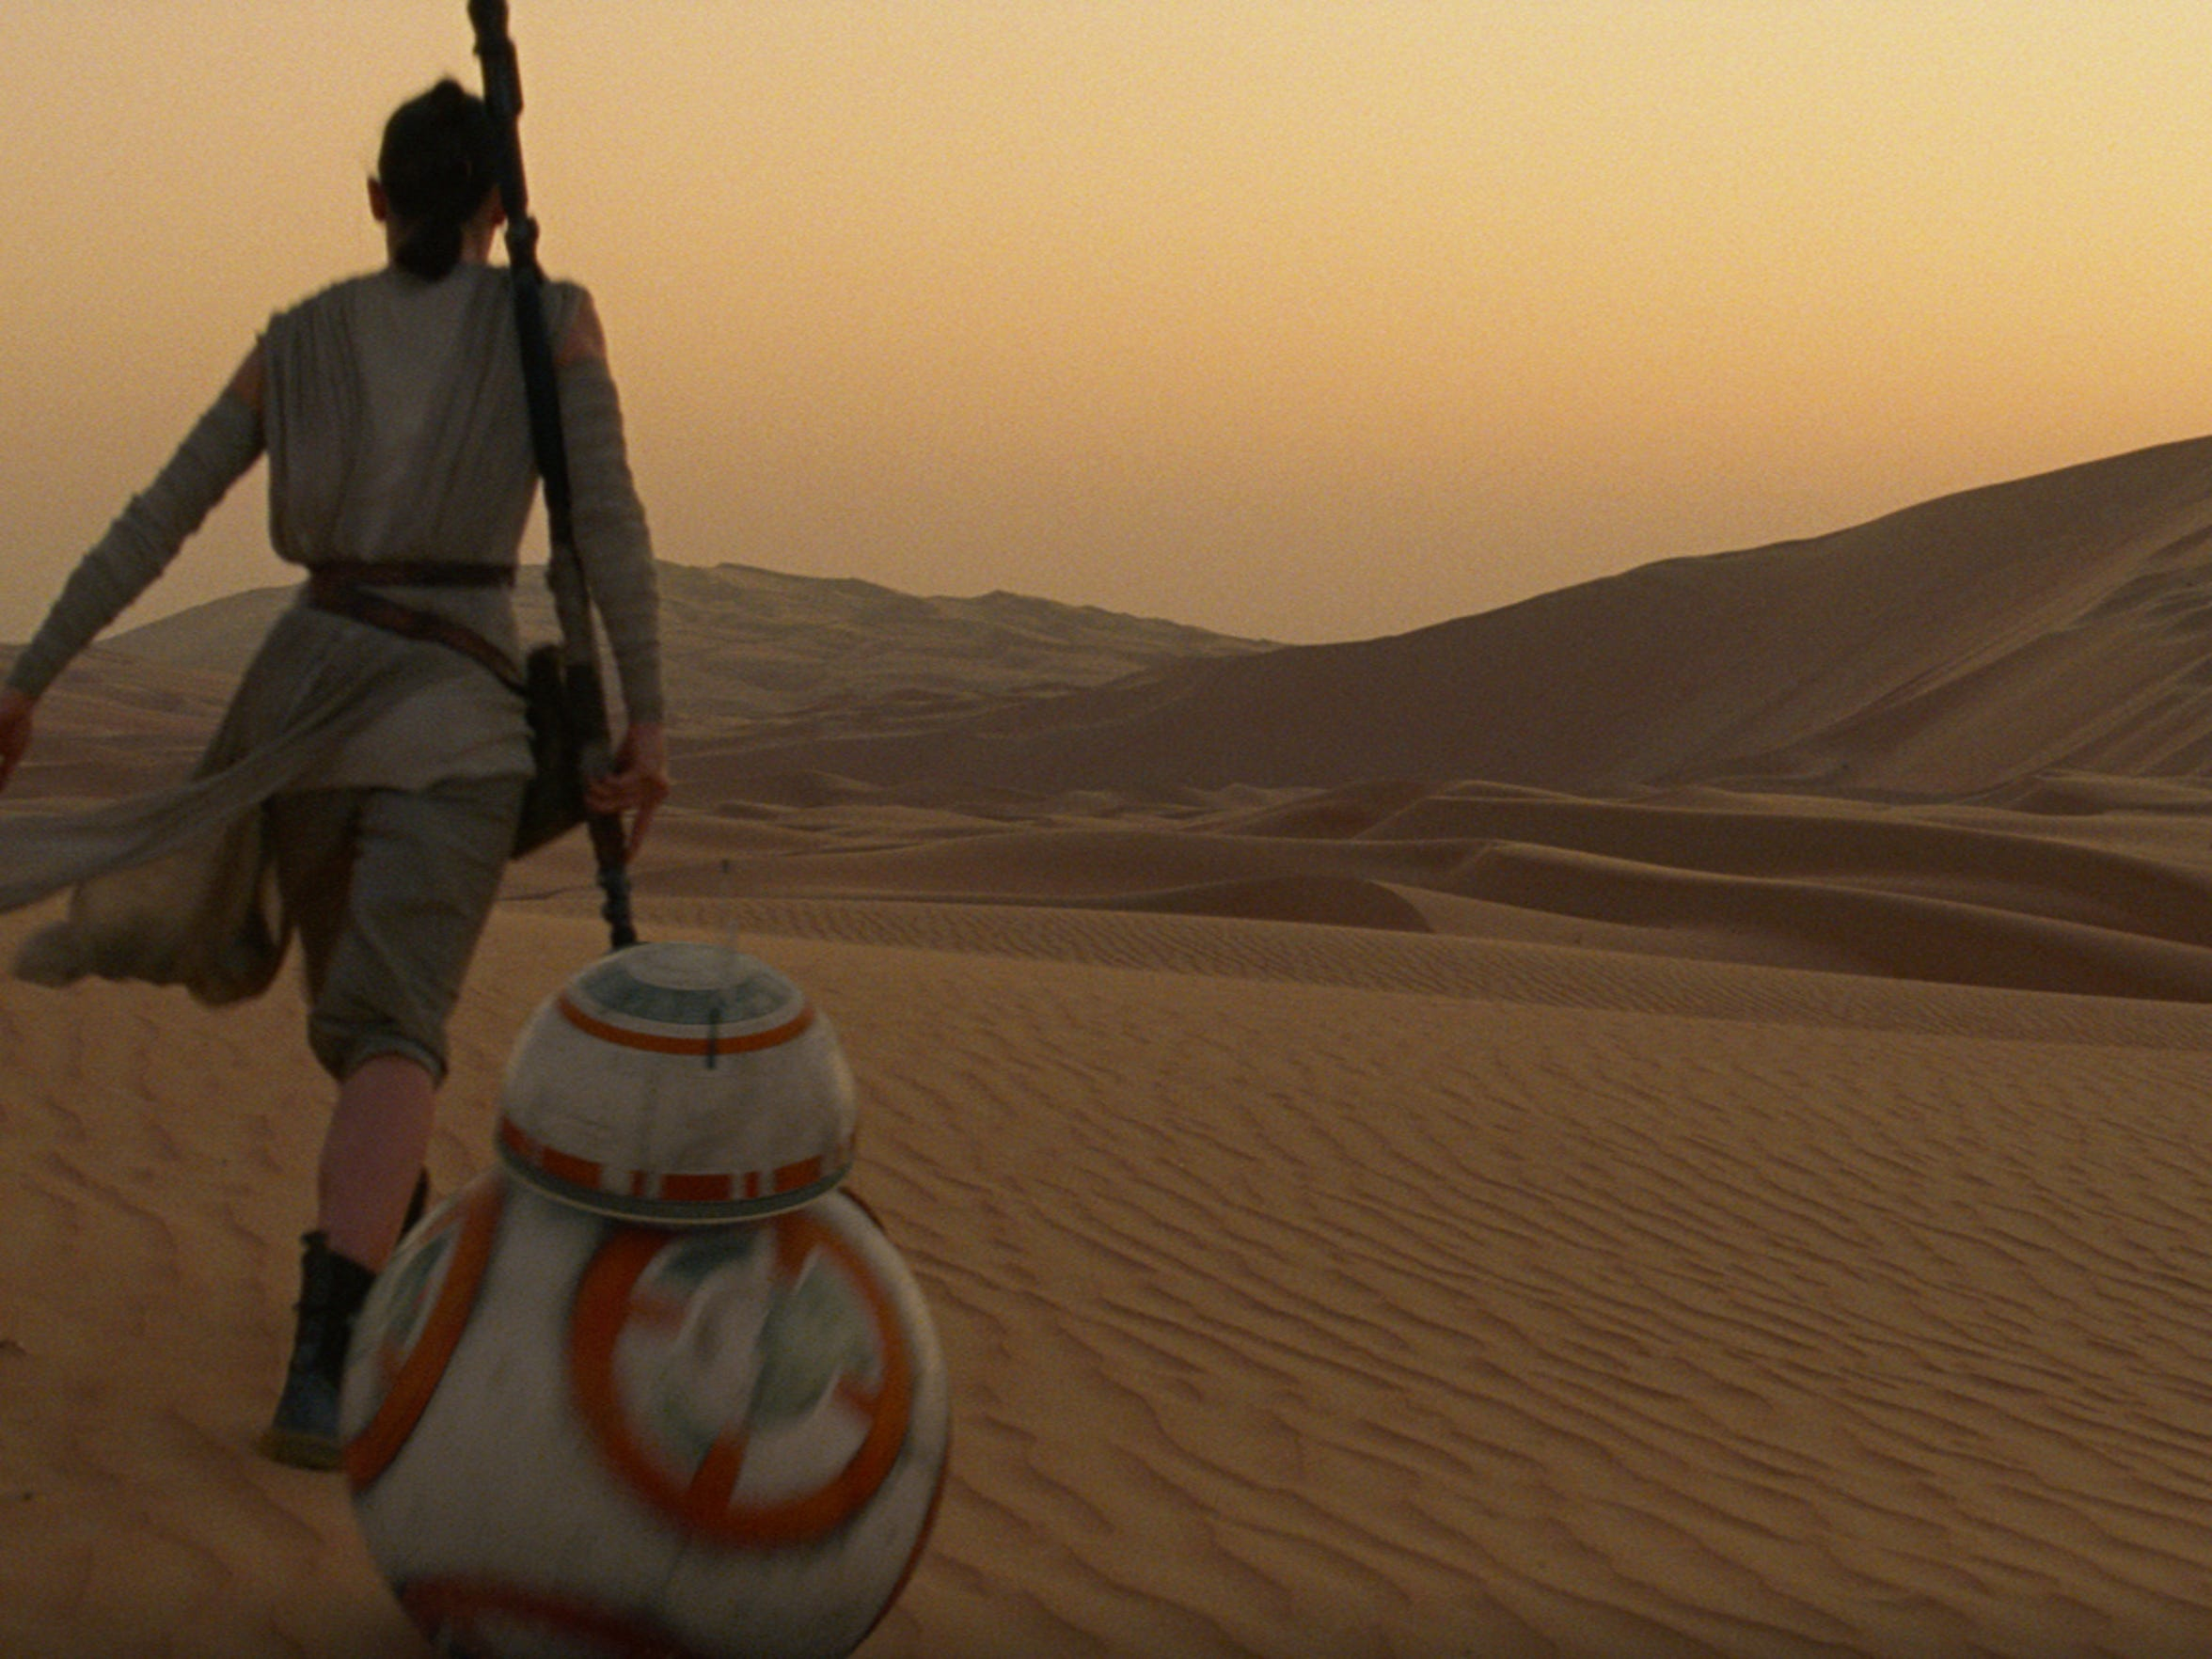 """Rey and BB-8 wheel it through a desert planet scape in """"Star Wars: The Force Awakens."""""""